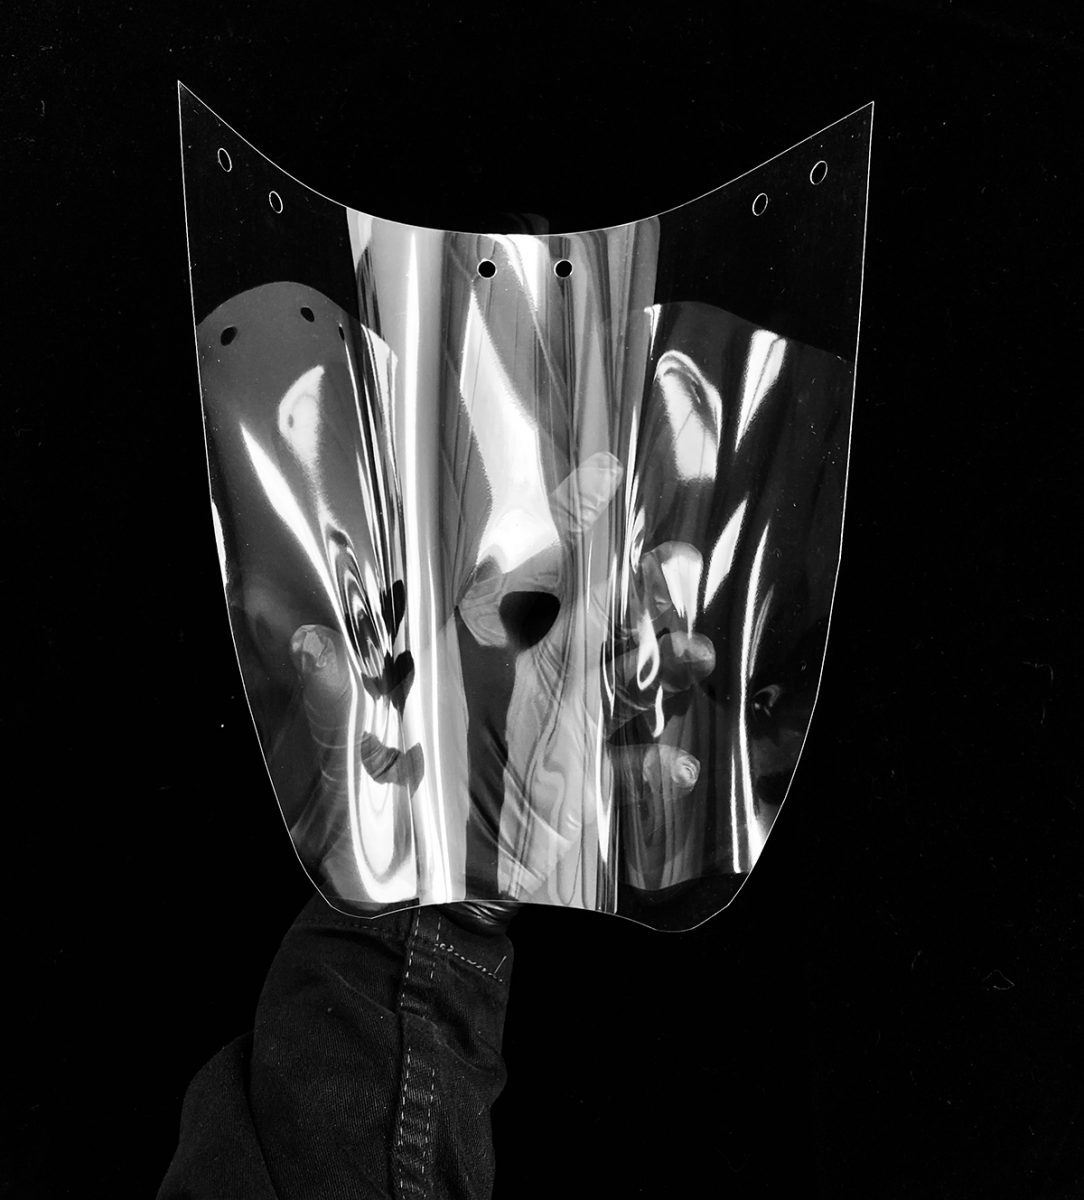 clear films to make face shields